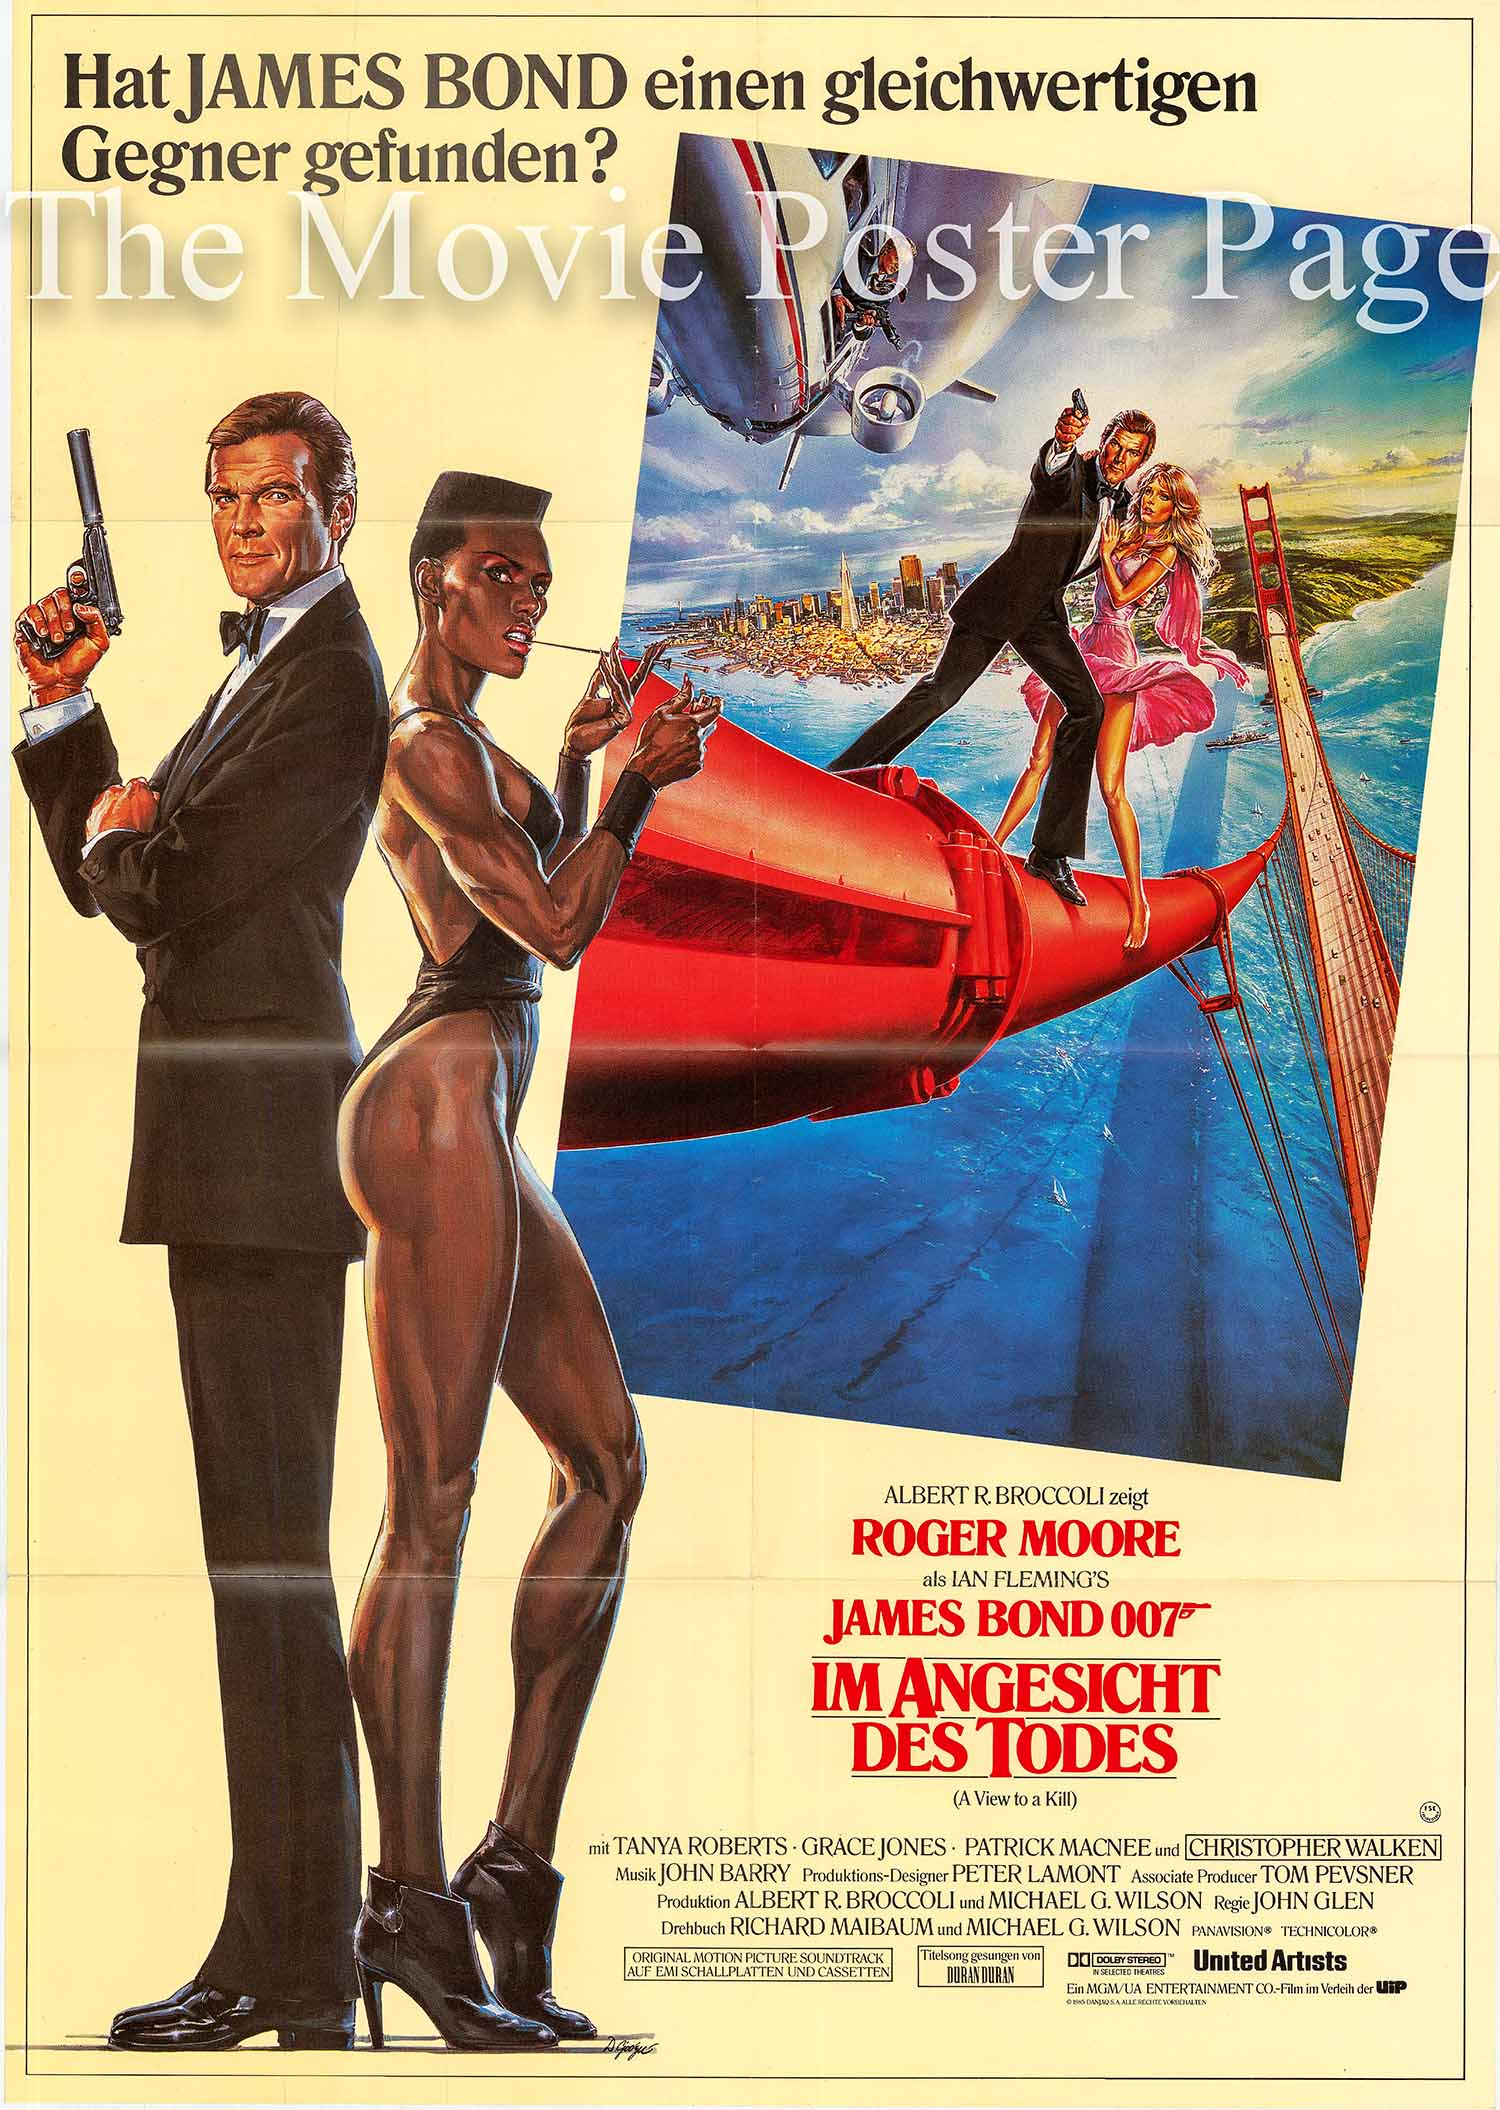 Pictured is a German promotional poster for the 1985 John Glen film A View to a Kill starring Roger Moore as James Bond.